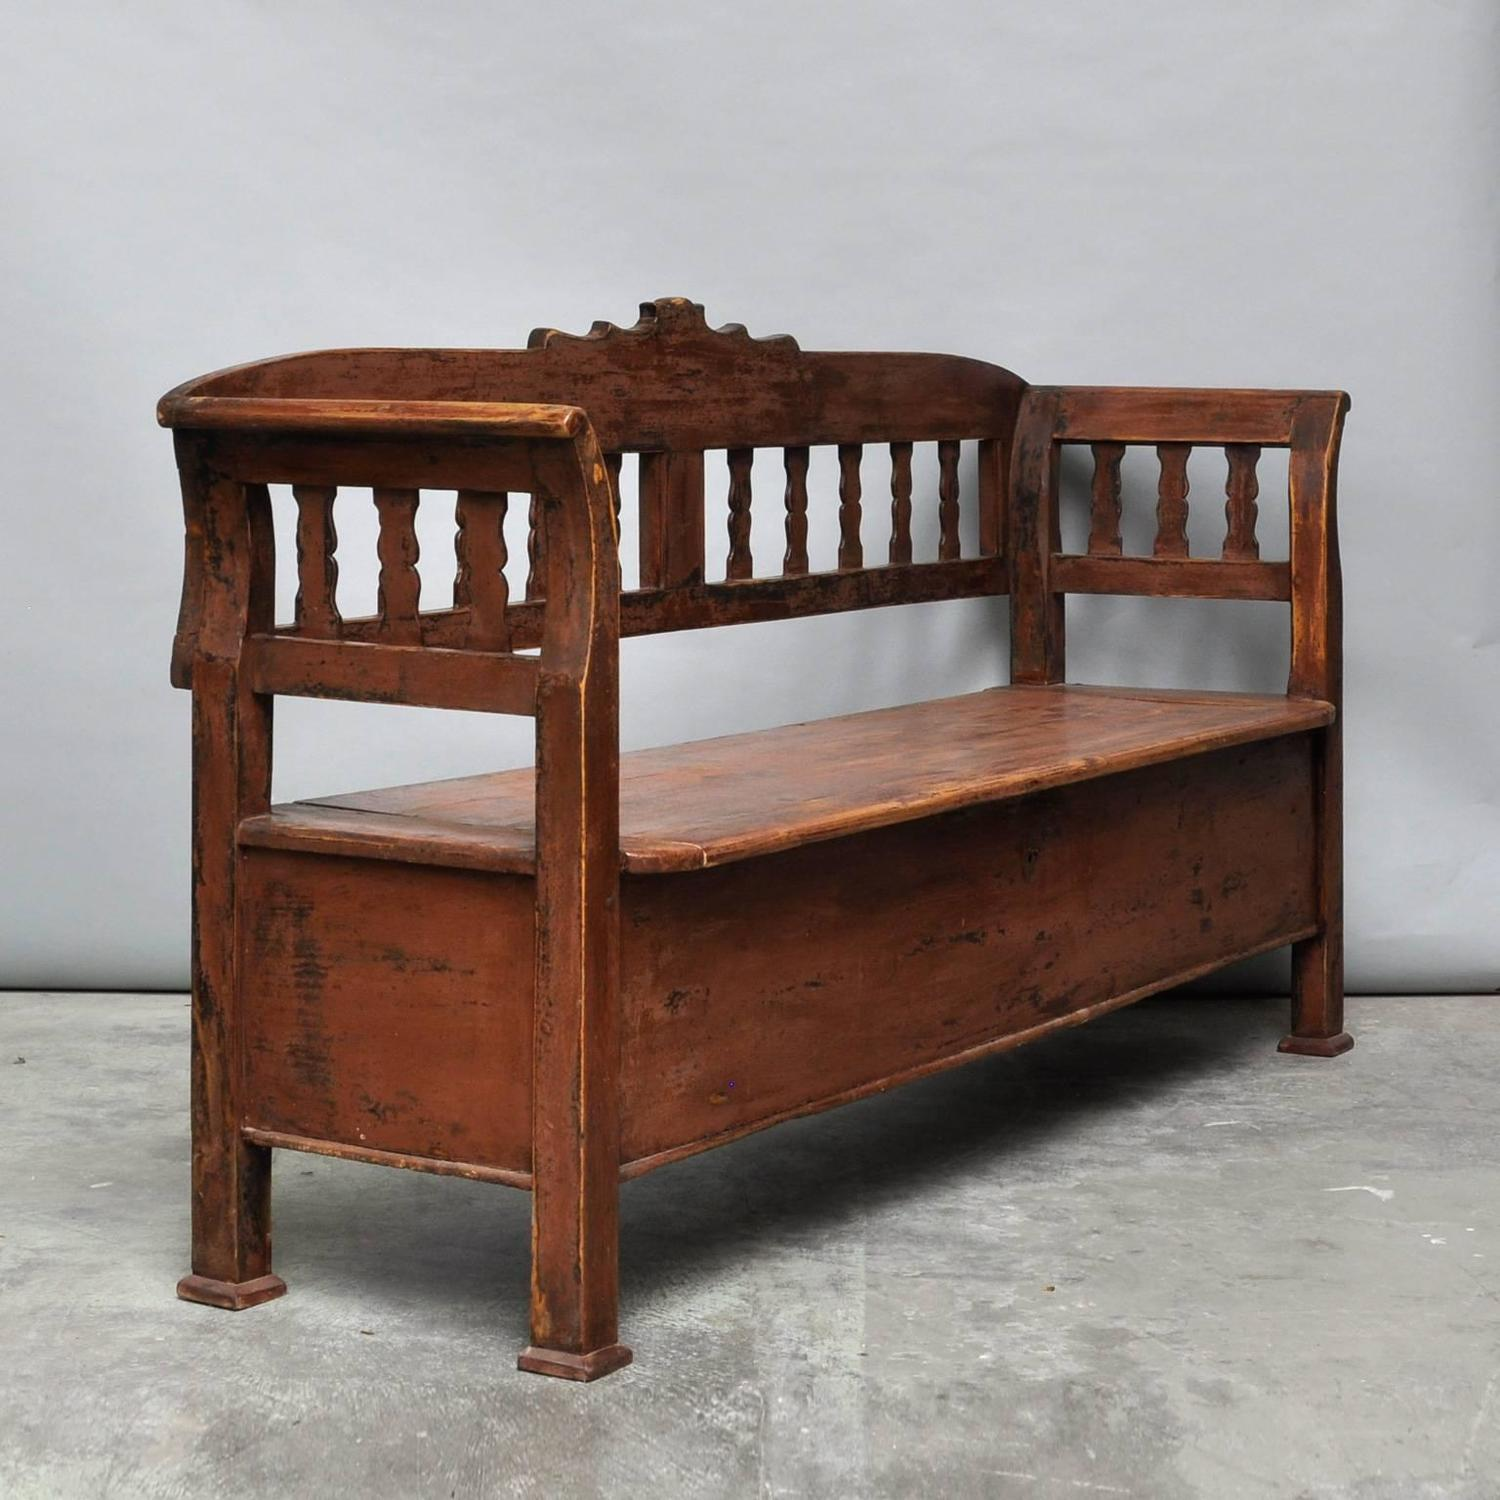 Antique Storage Bench With Original Paint Circa 1920 For Sale At 1stdibs